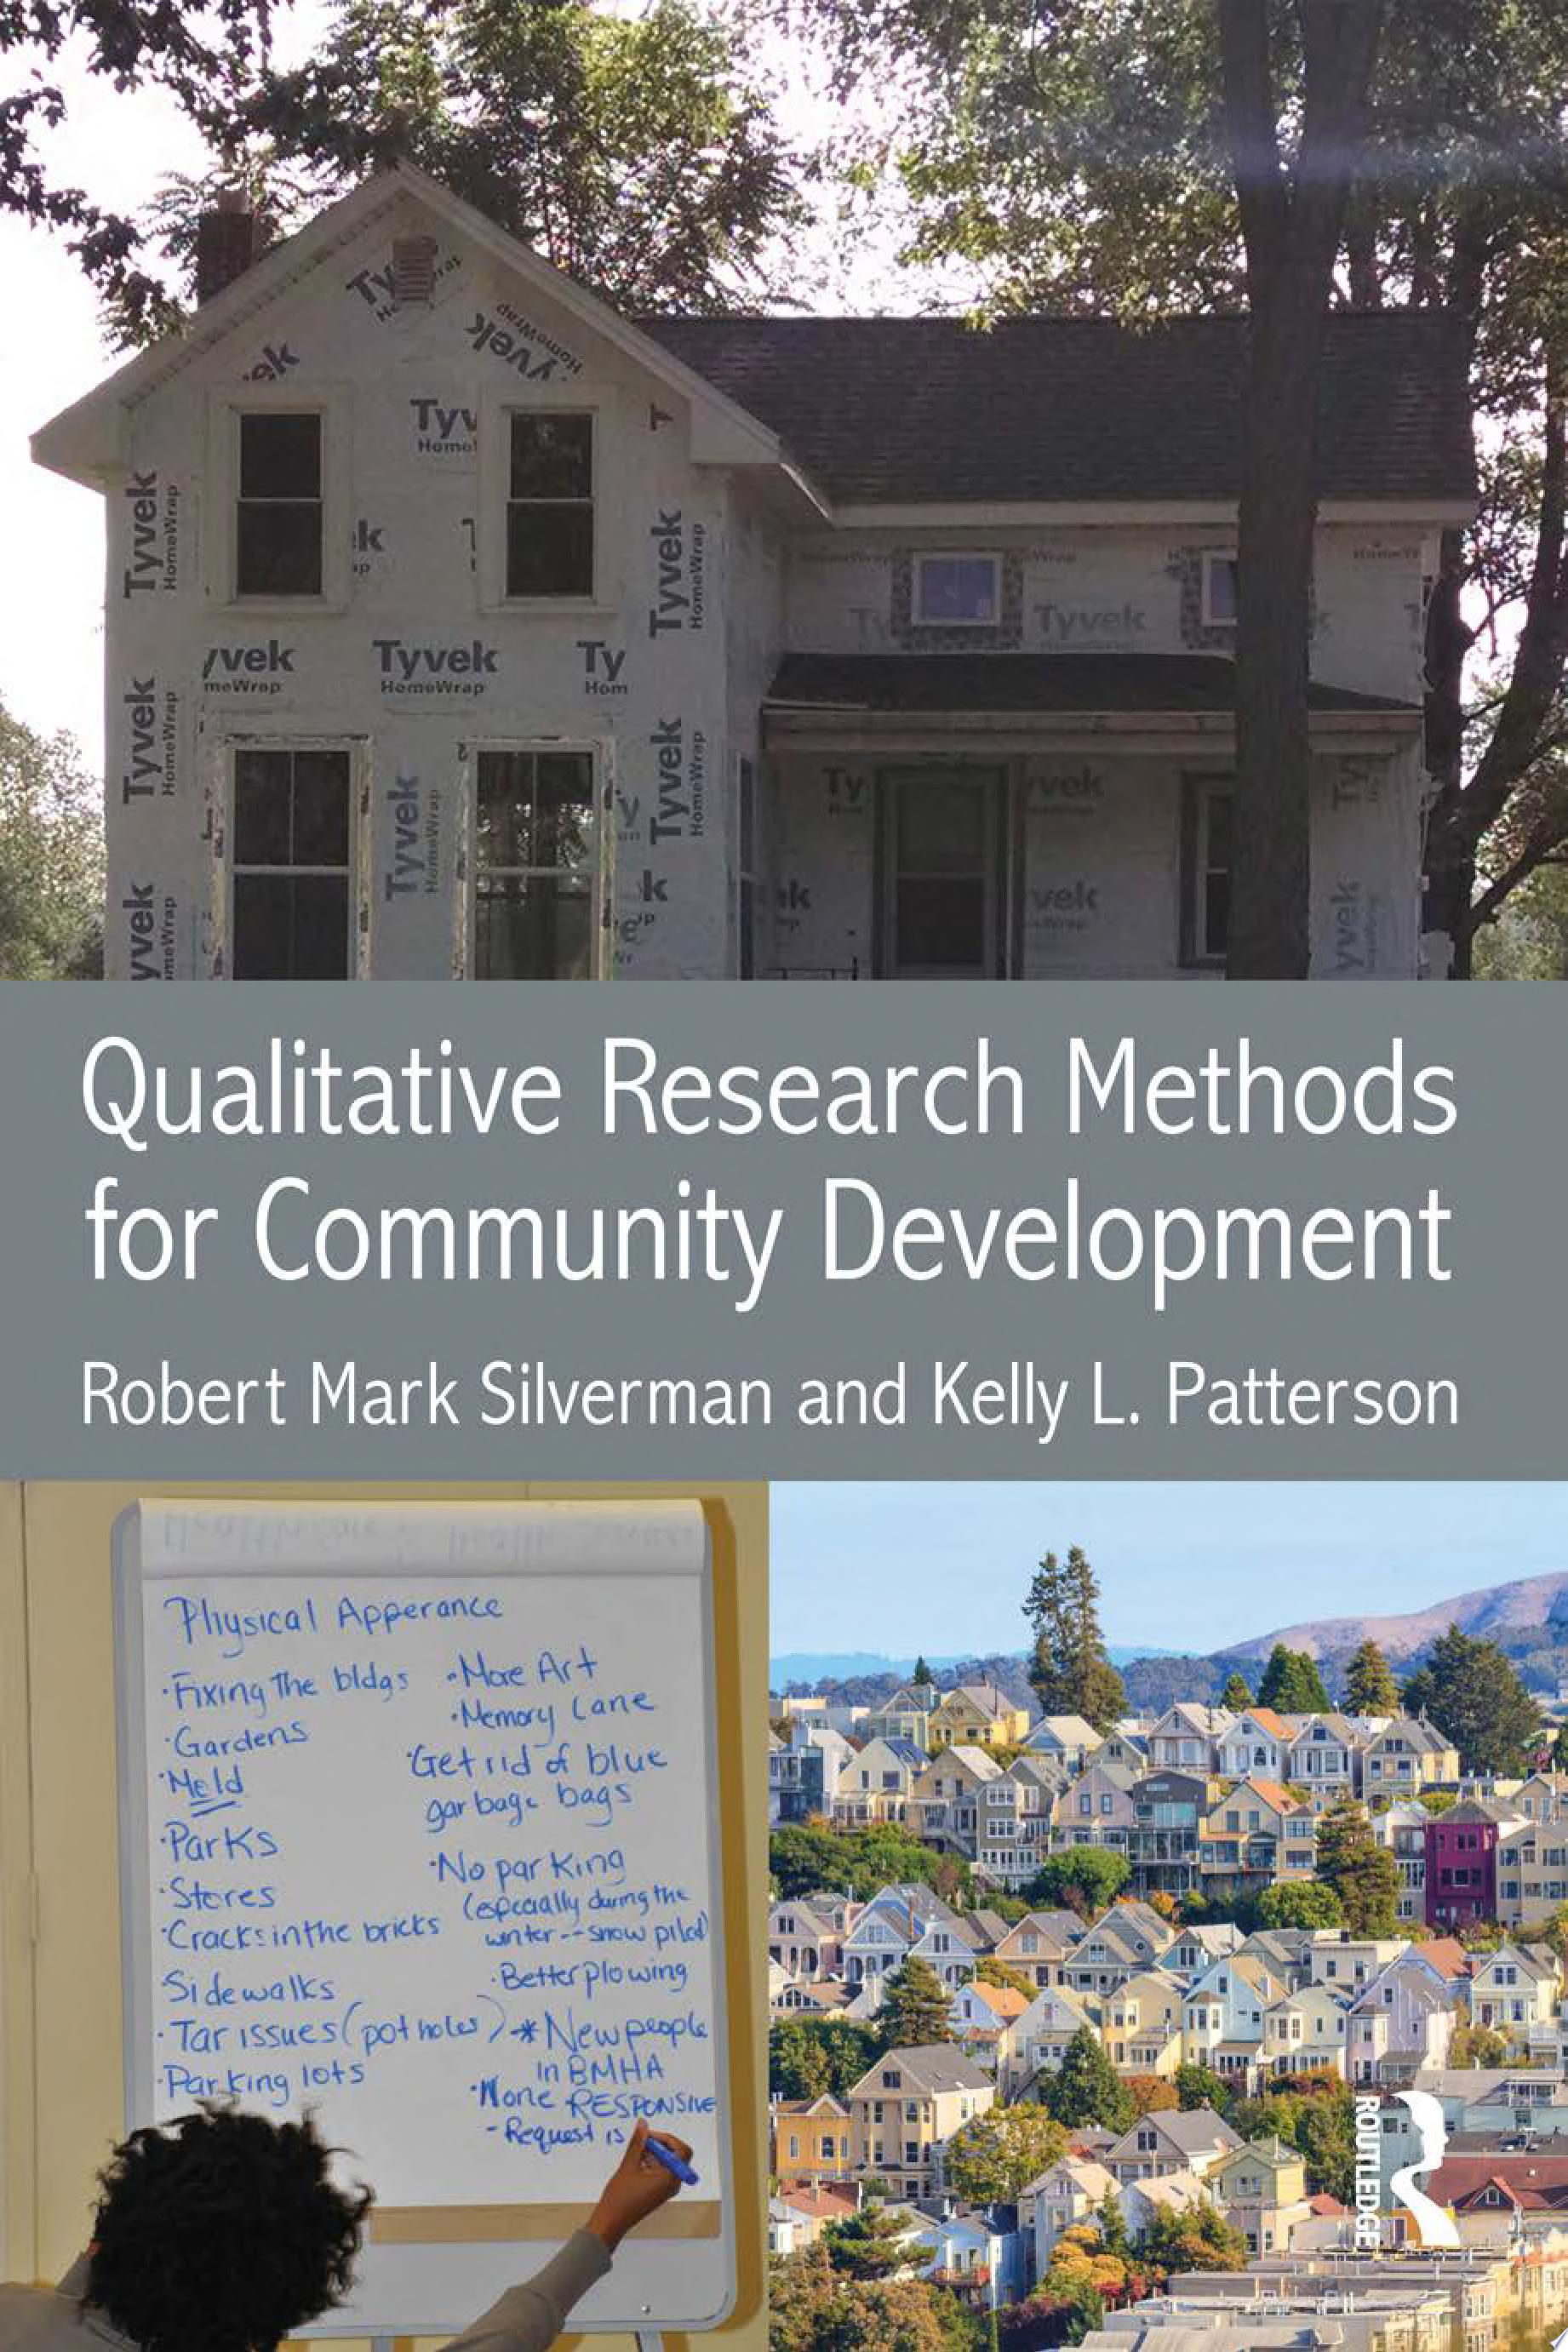 Qualitative Research Methods for Community Development